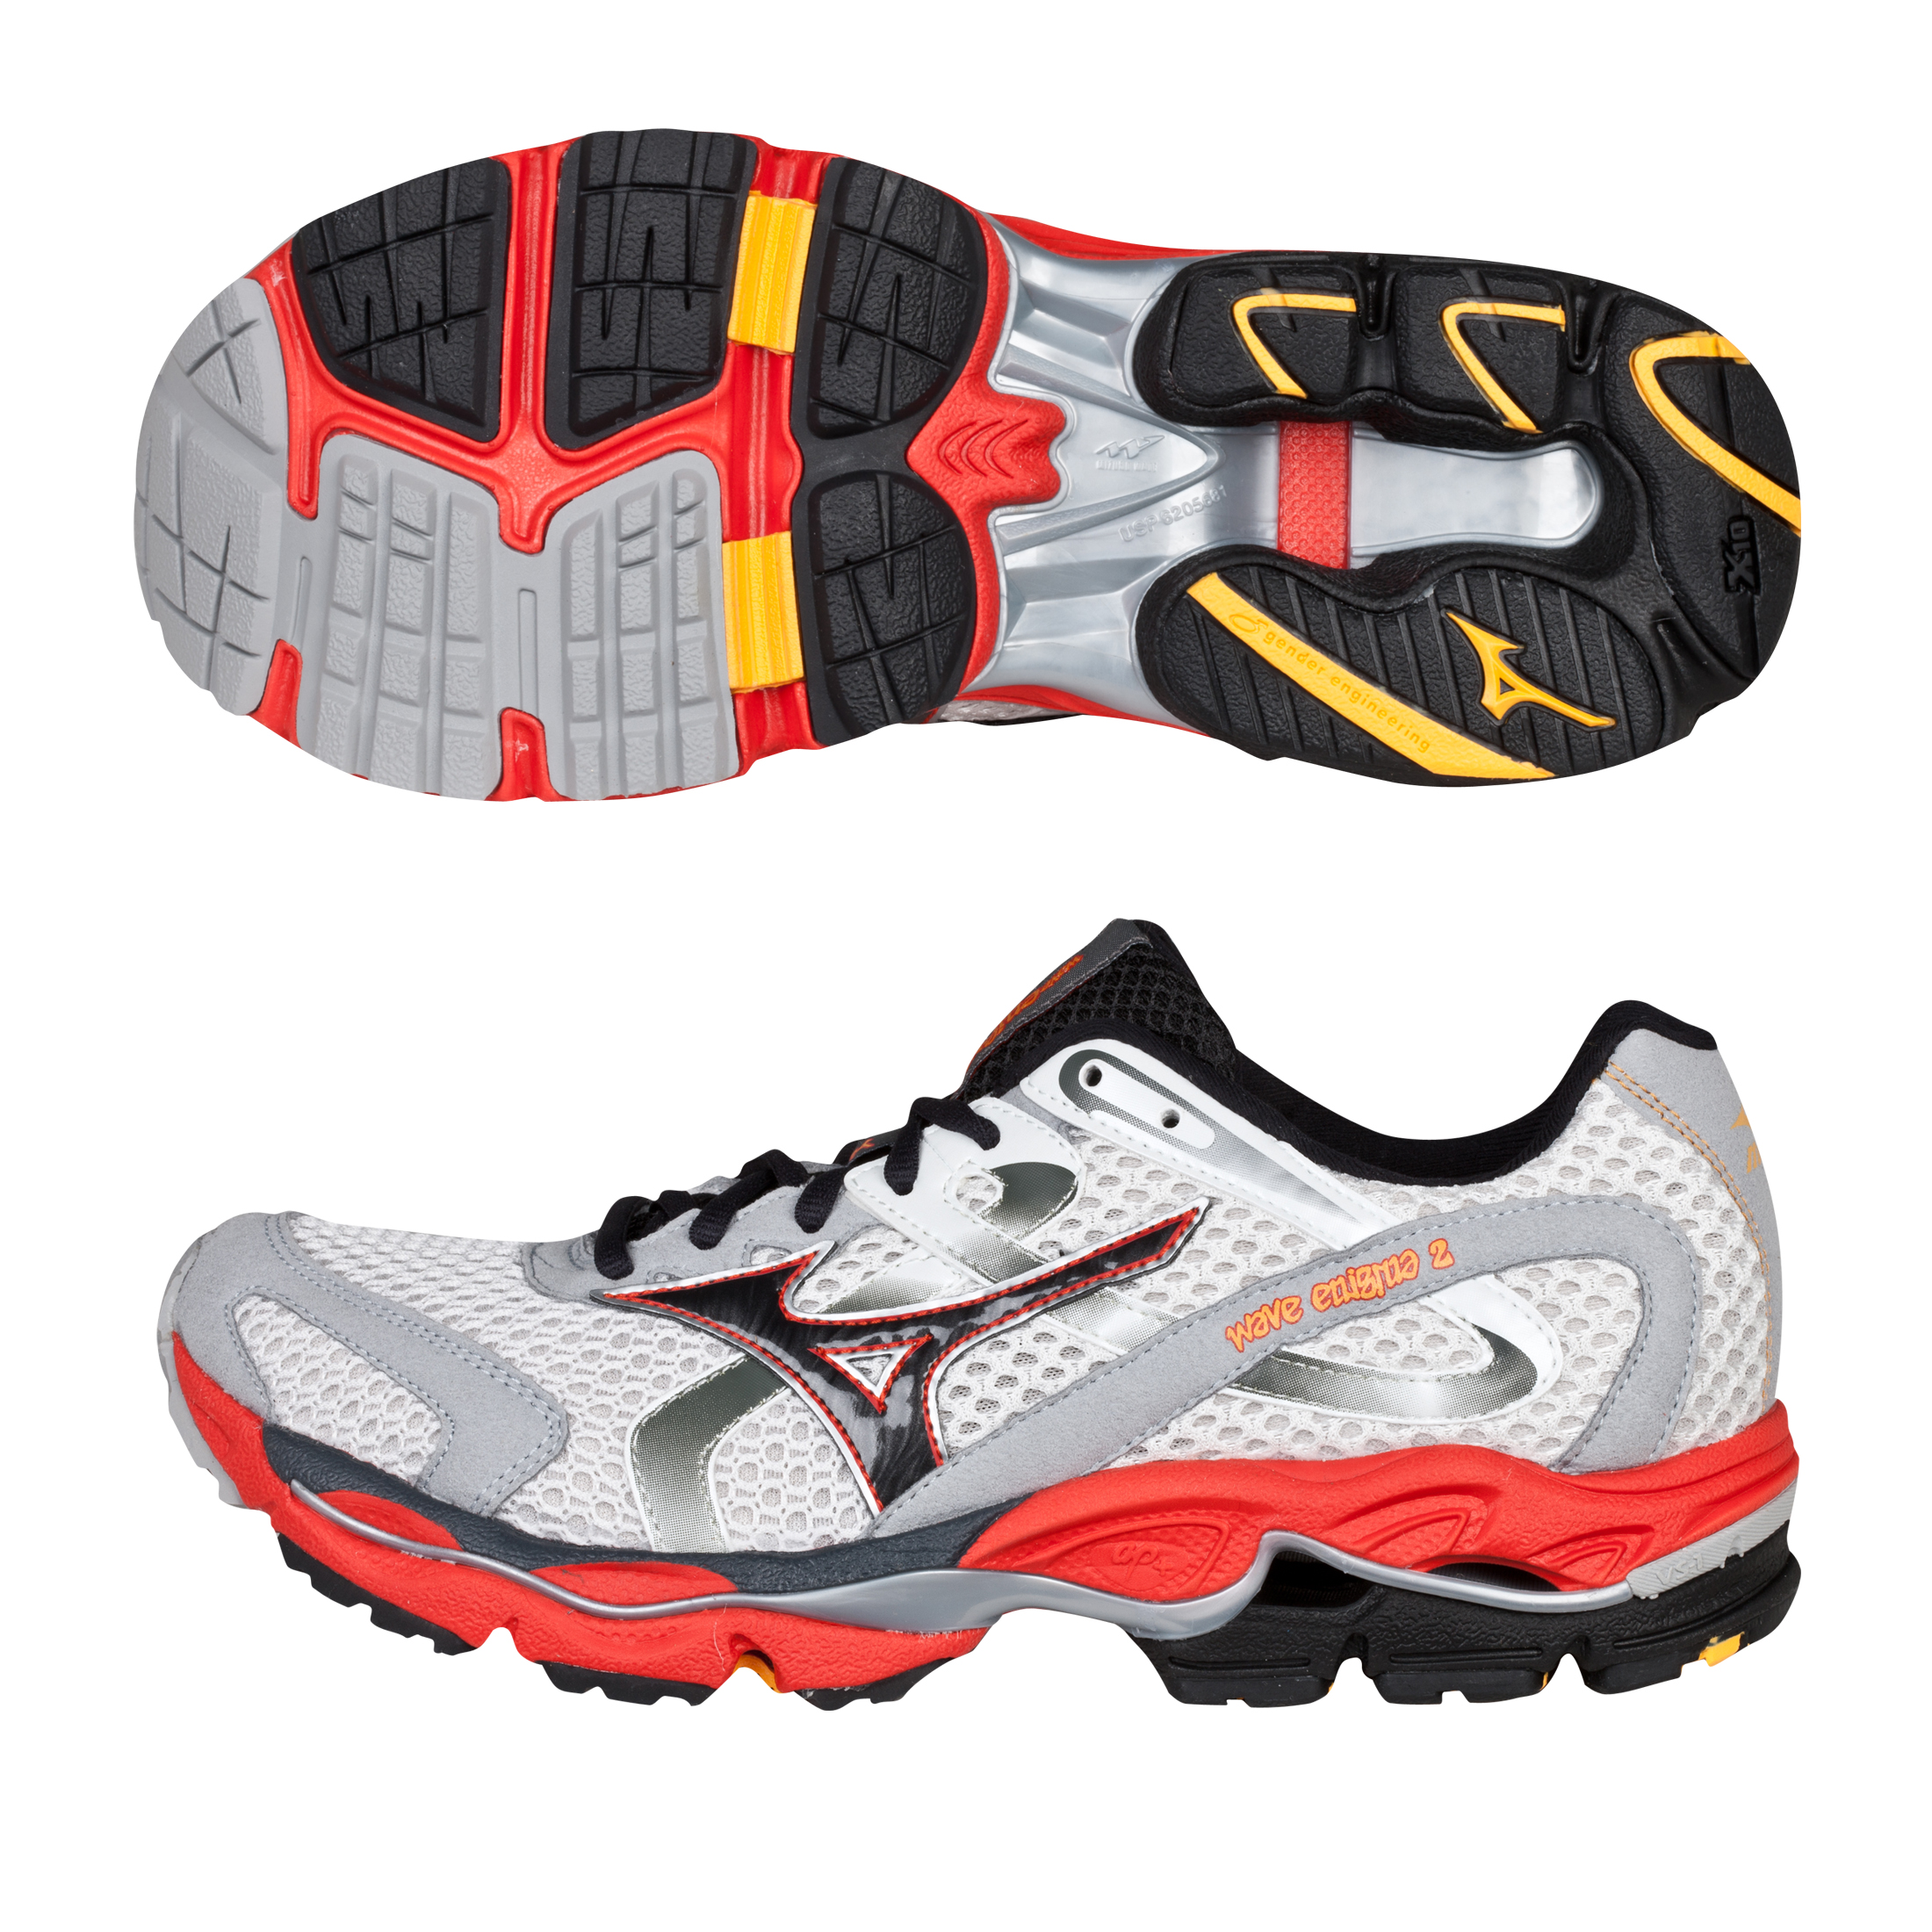 Mizuno Wave Enigma 2 Trainer - White/Anthracite/Orange